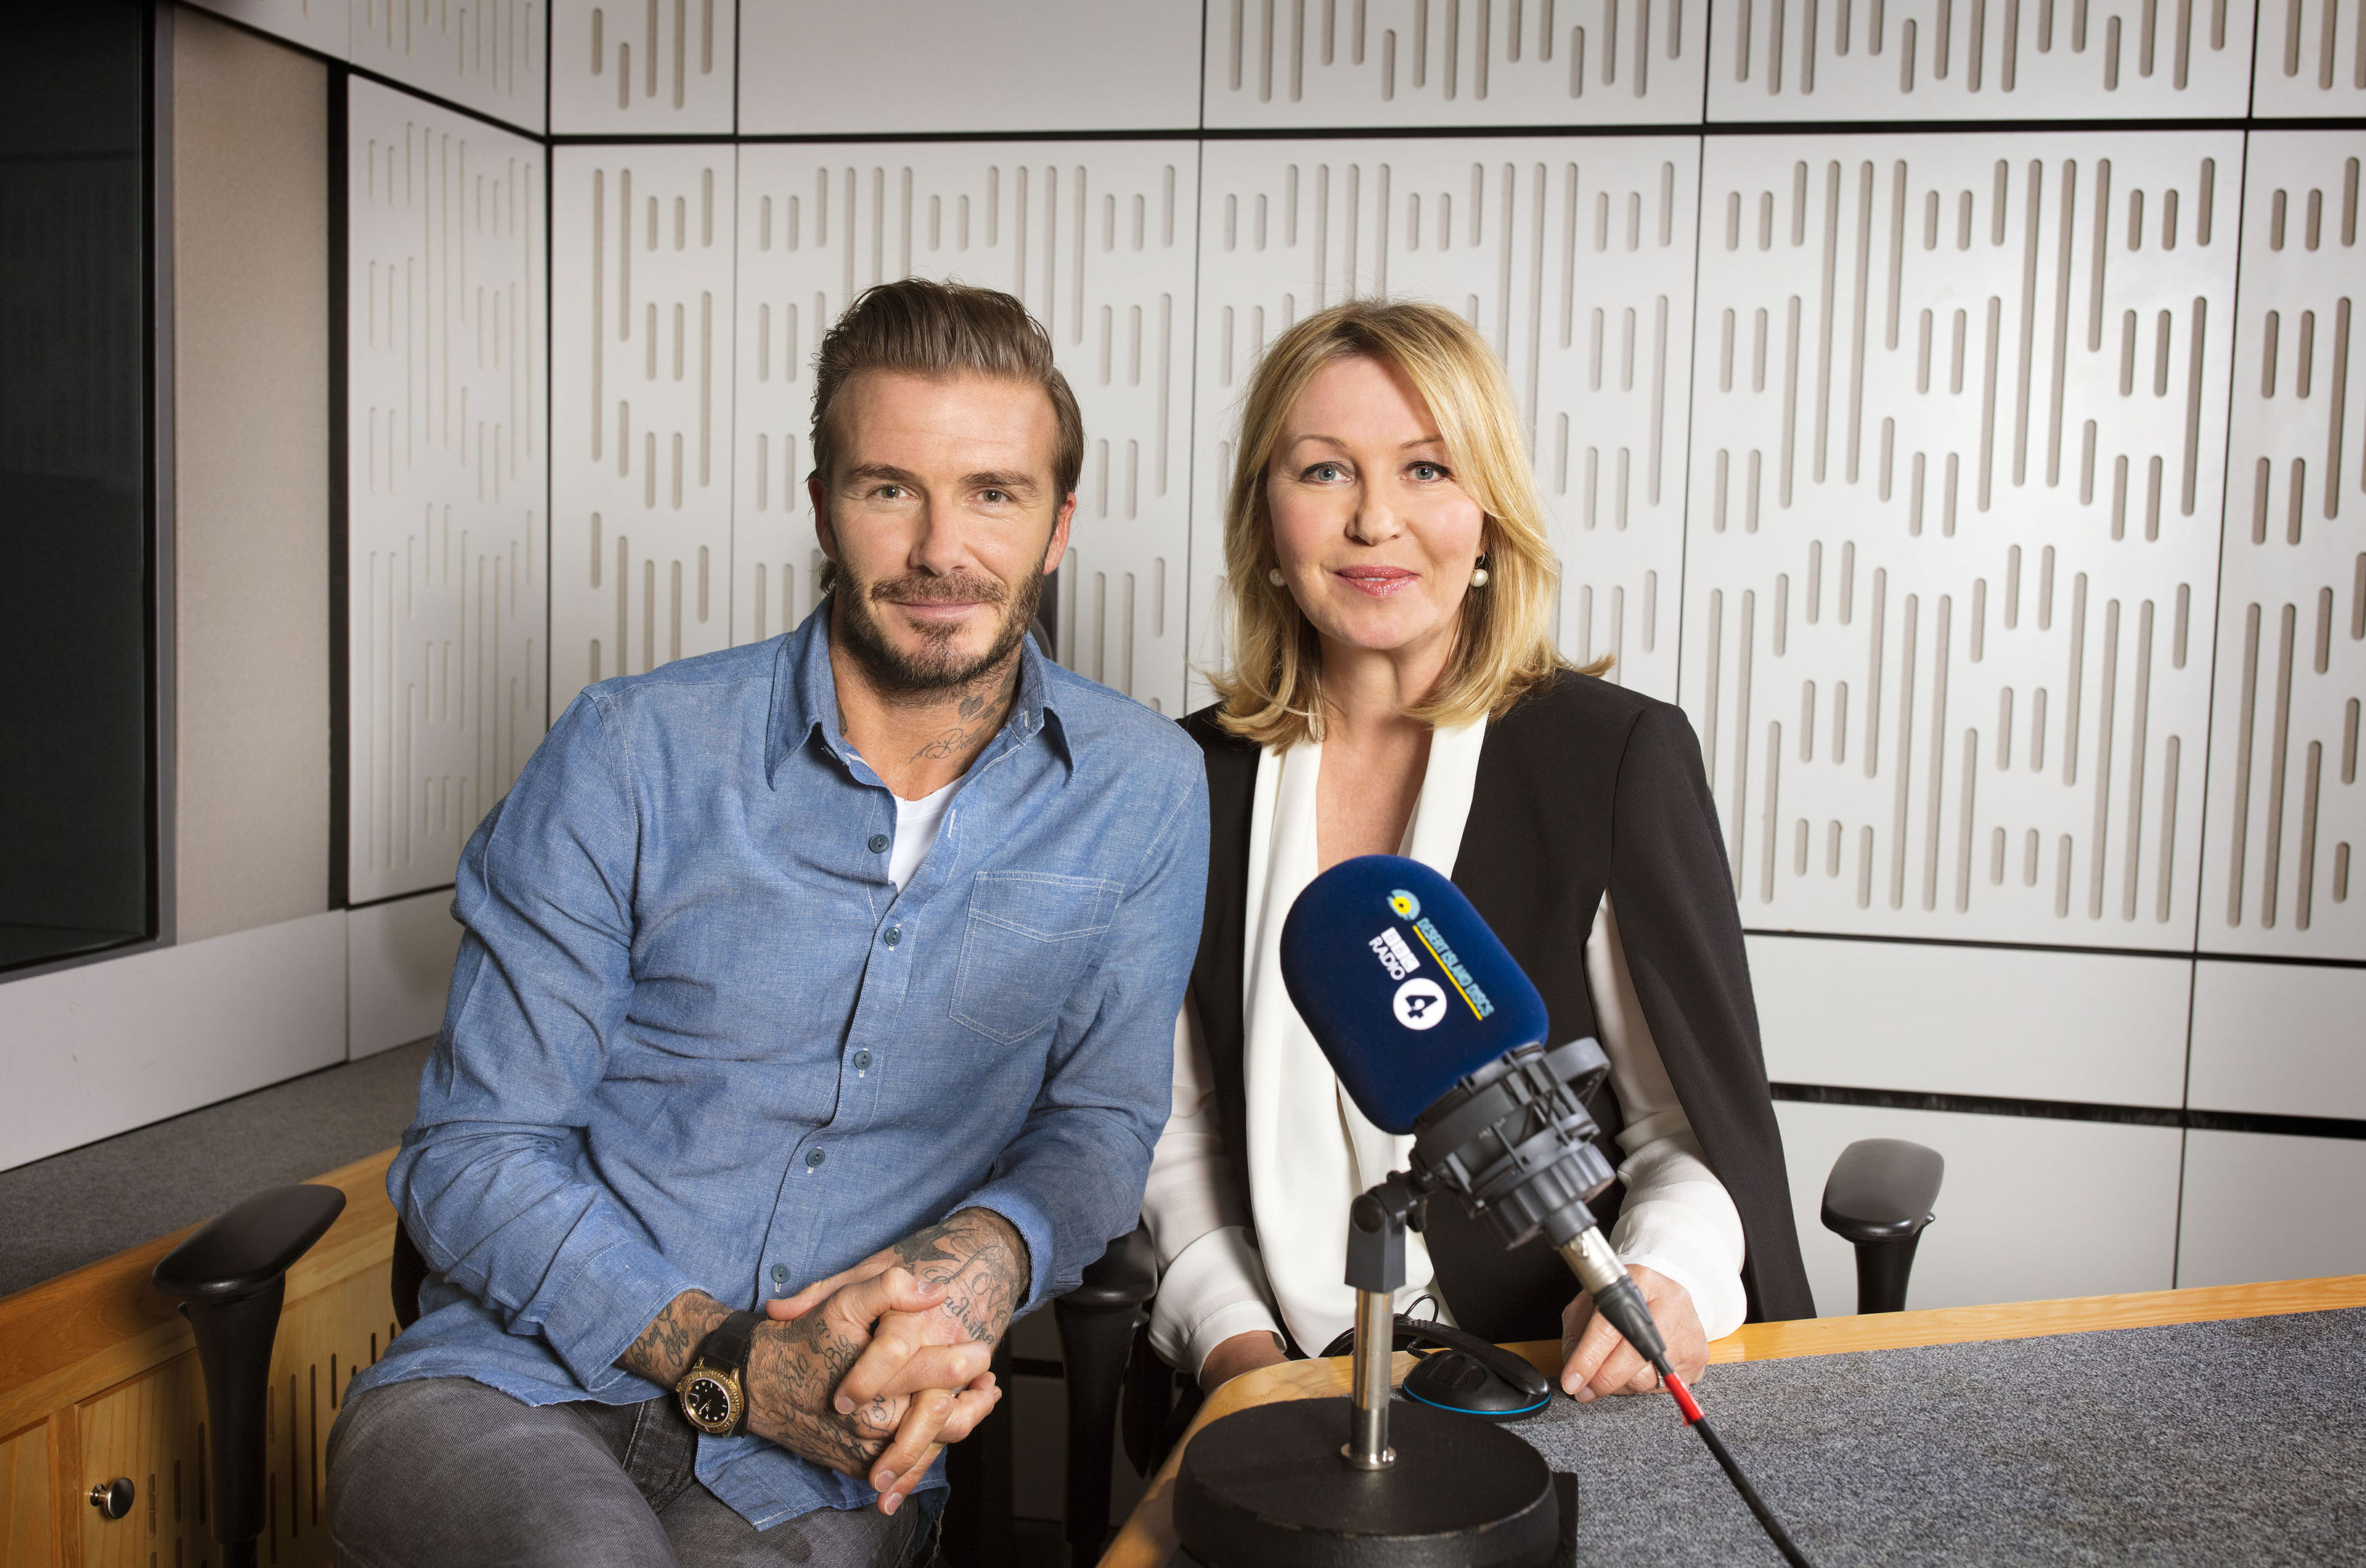 Kirsty Young with David Beckham as he joins Desert Island Discs for the programme's 75th anniversary edition  on Sunday (Sophie Mutevelian/BBC/PA Wire